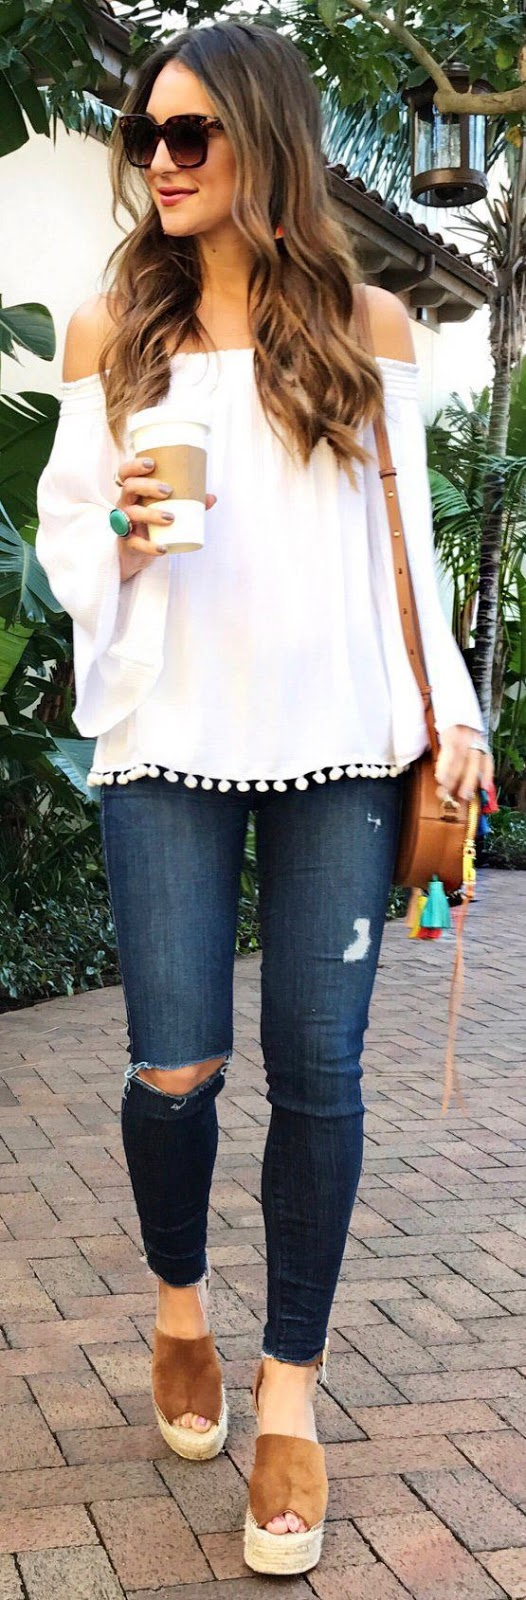 what to wear a white off shoulder blouse : bag + rips + platform sandals